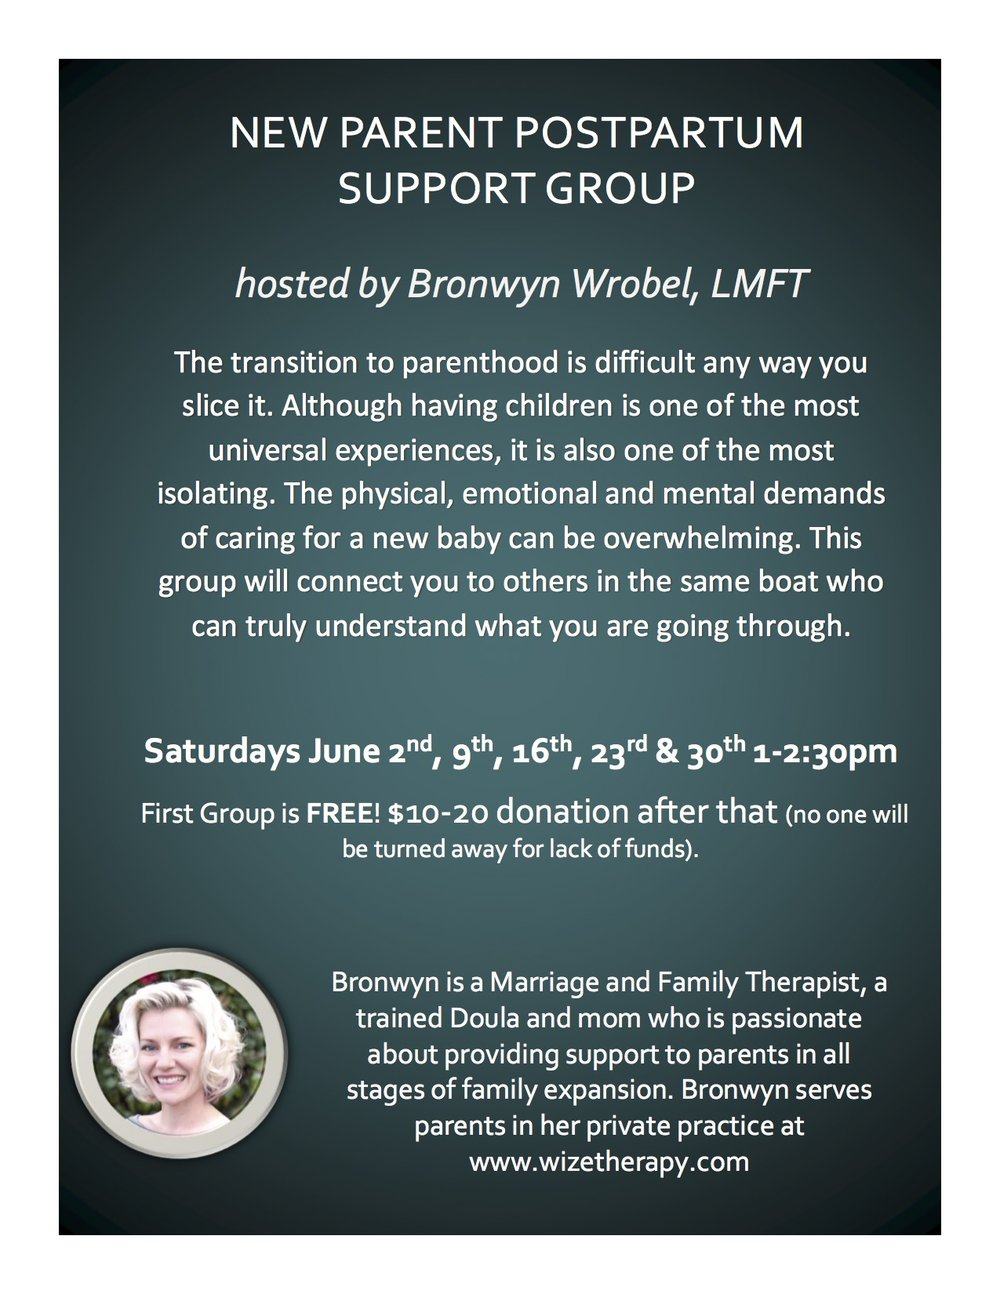 Flyer for support group for new parents (2).jpg